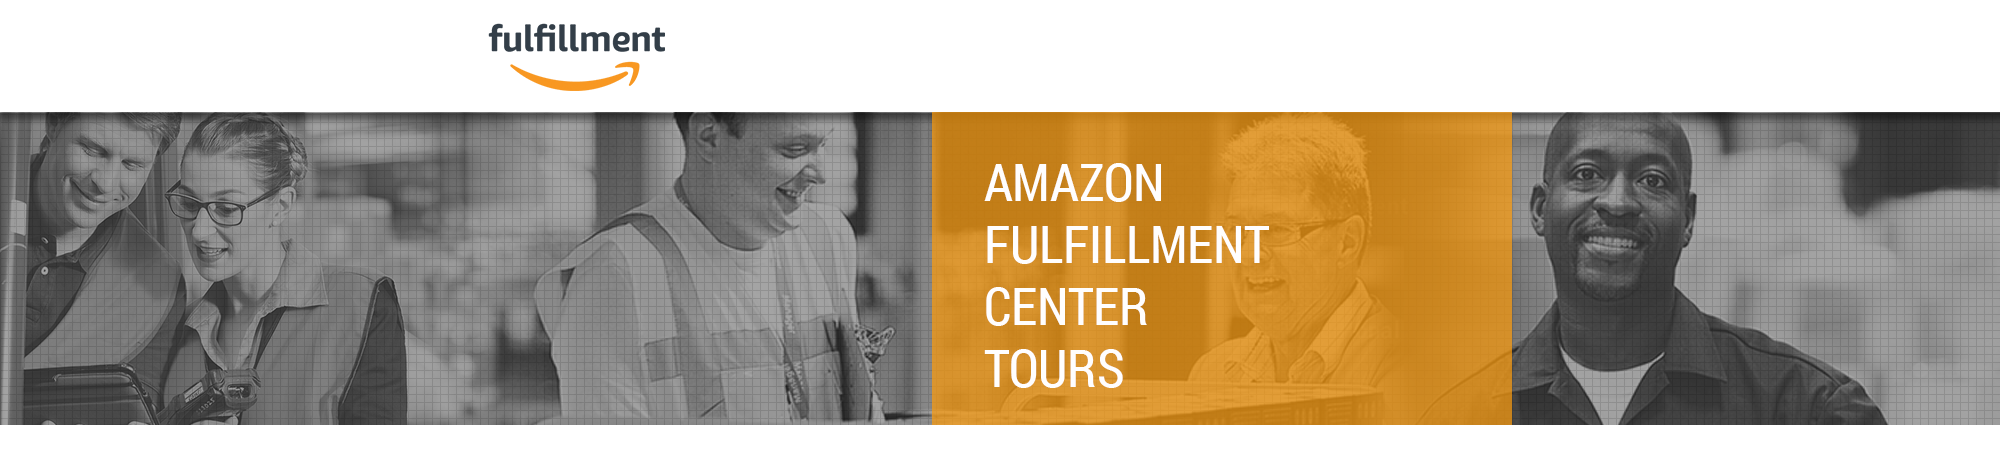 Amazon Fulfillment Center Tour - Chester, VA